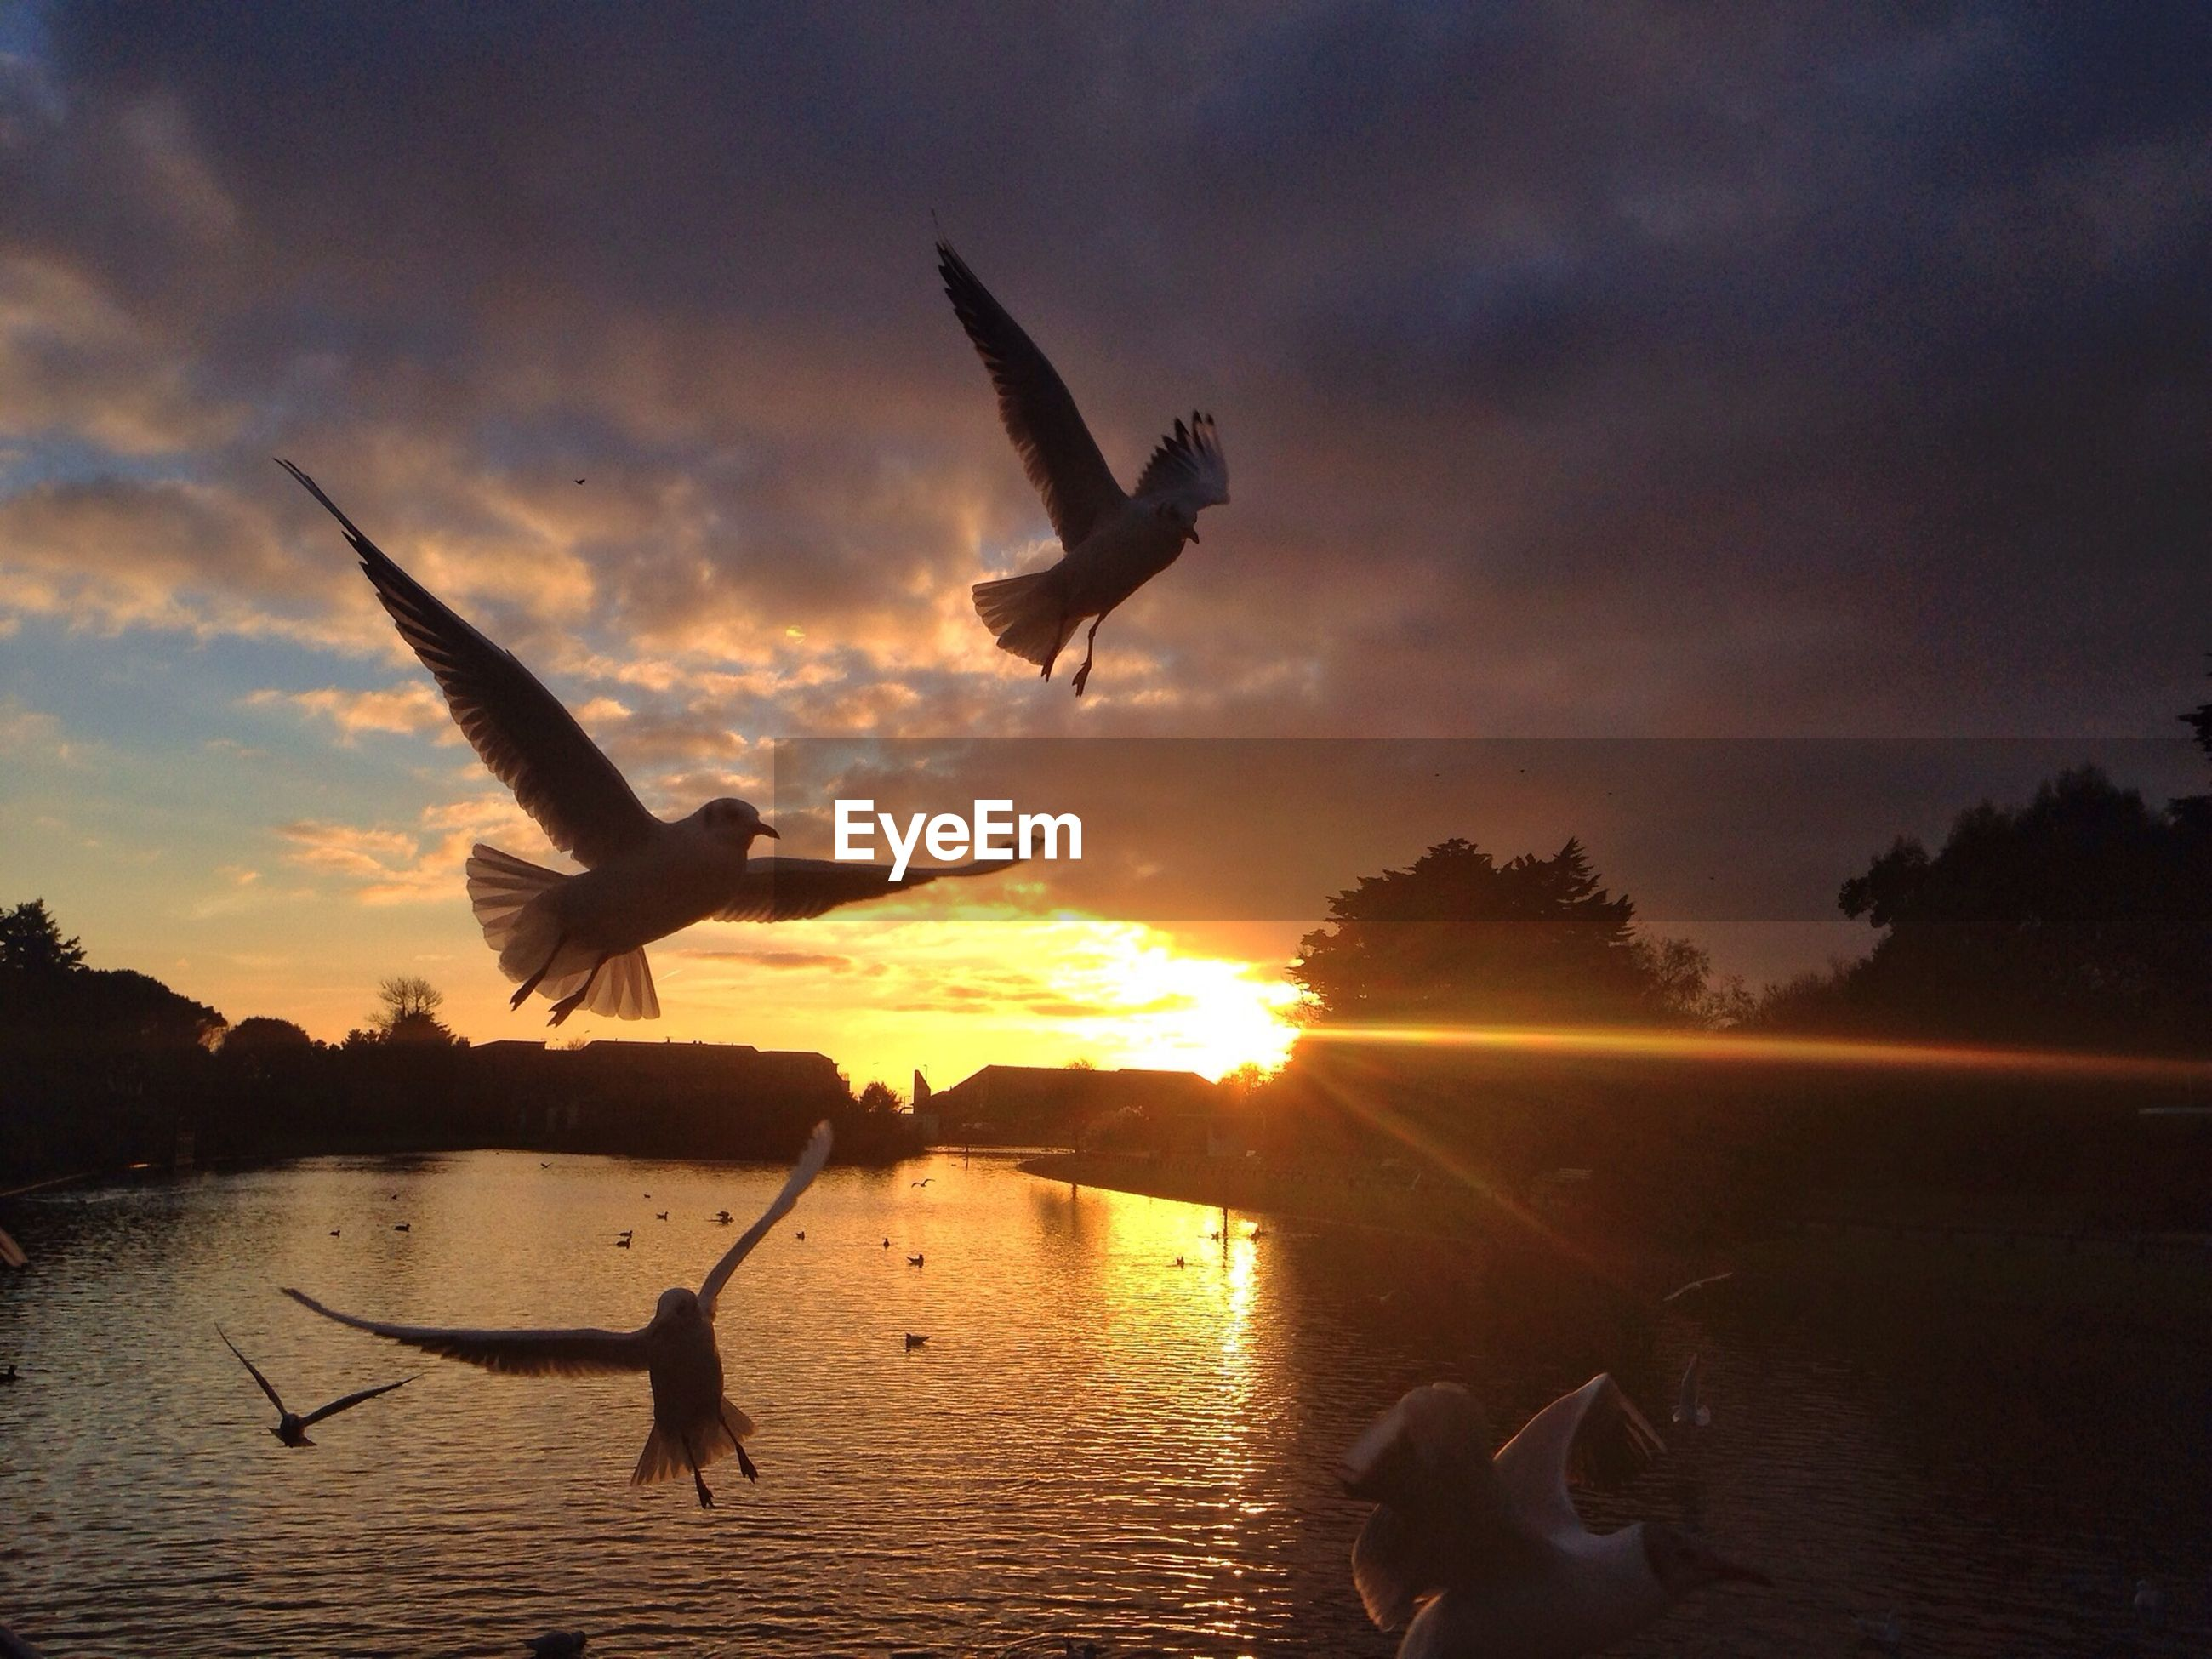 Birds flying over calm lake at sunset